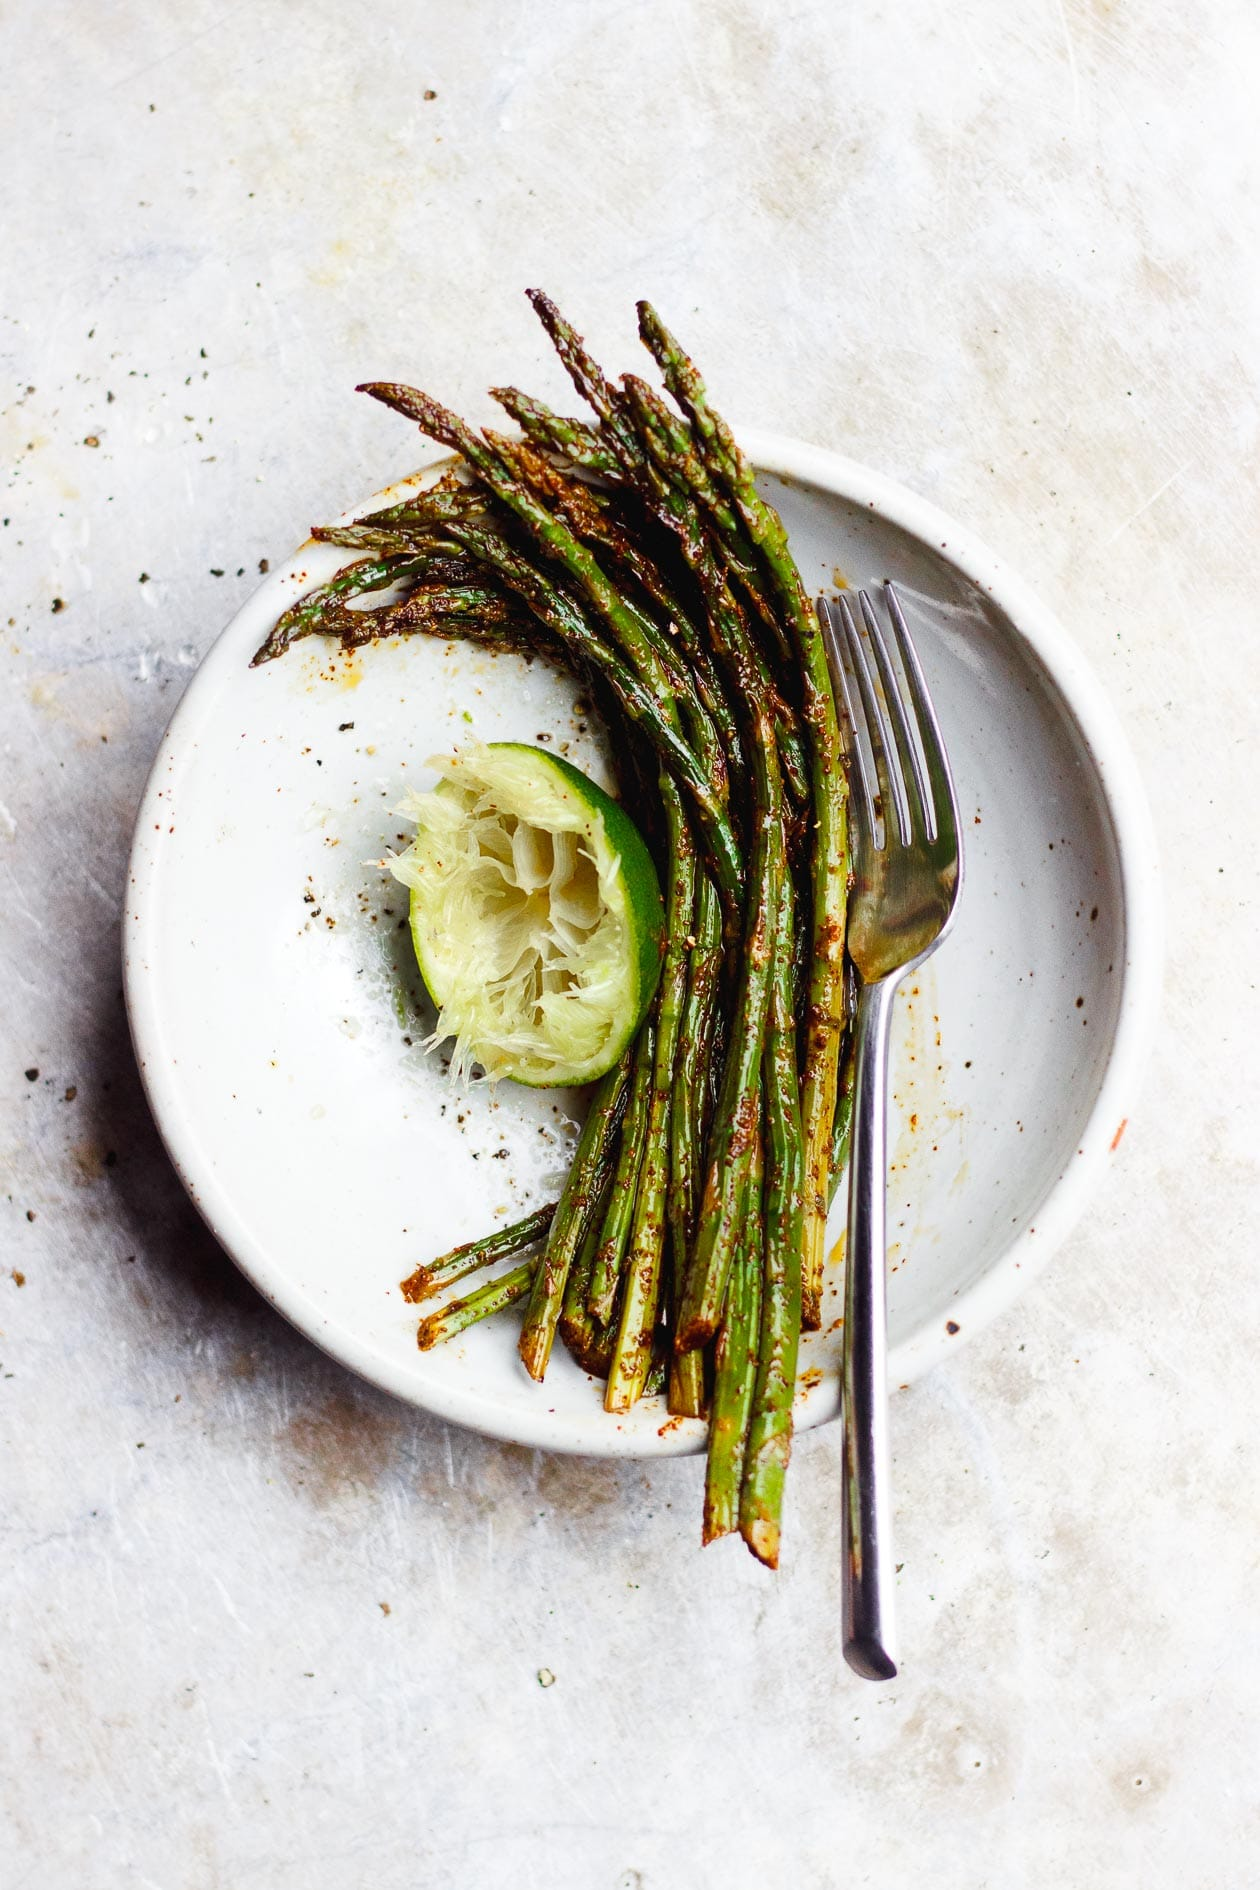 CHILI LIME ROASTED ASPARAGUS